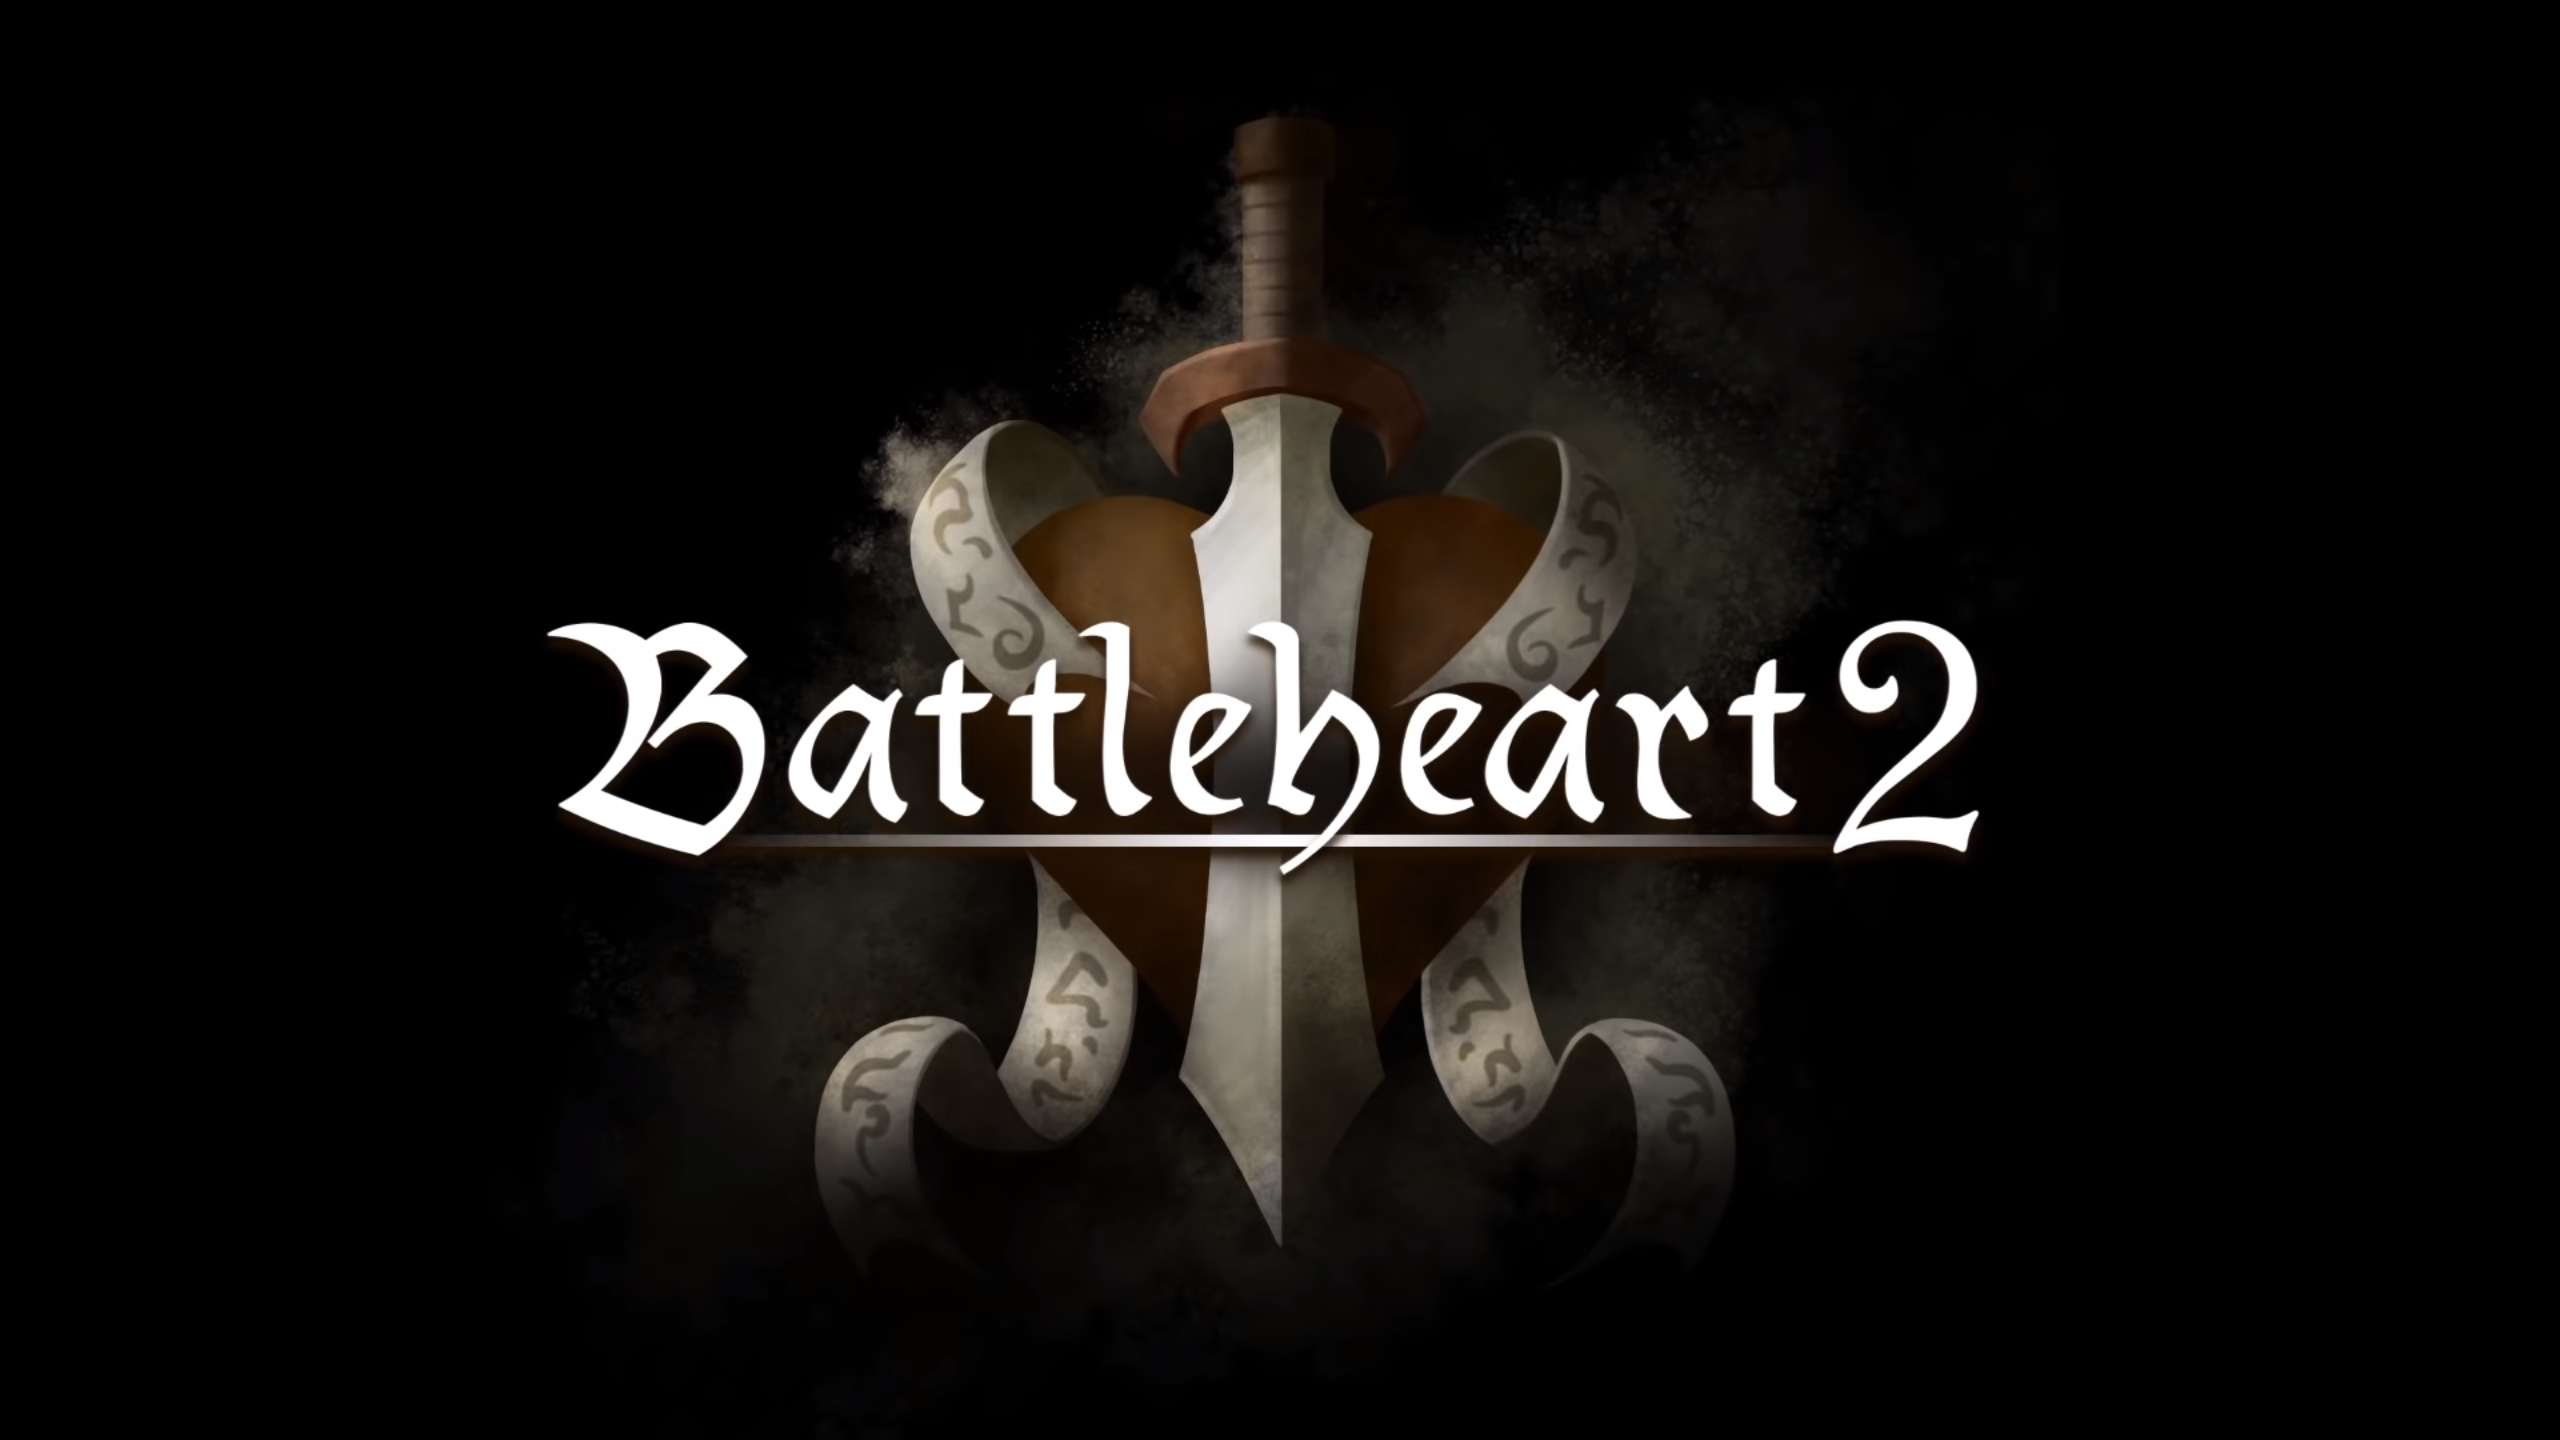 Battleheart 2 hacks and slashes its way onto the Play Store